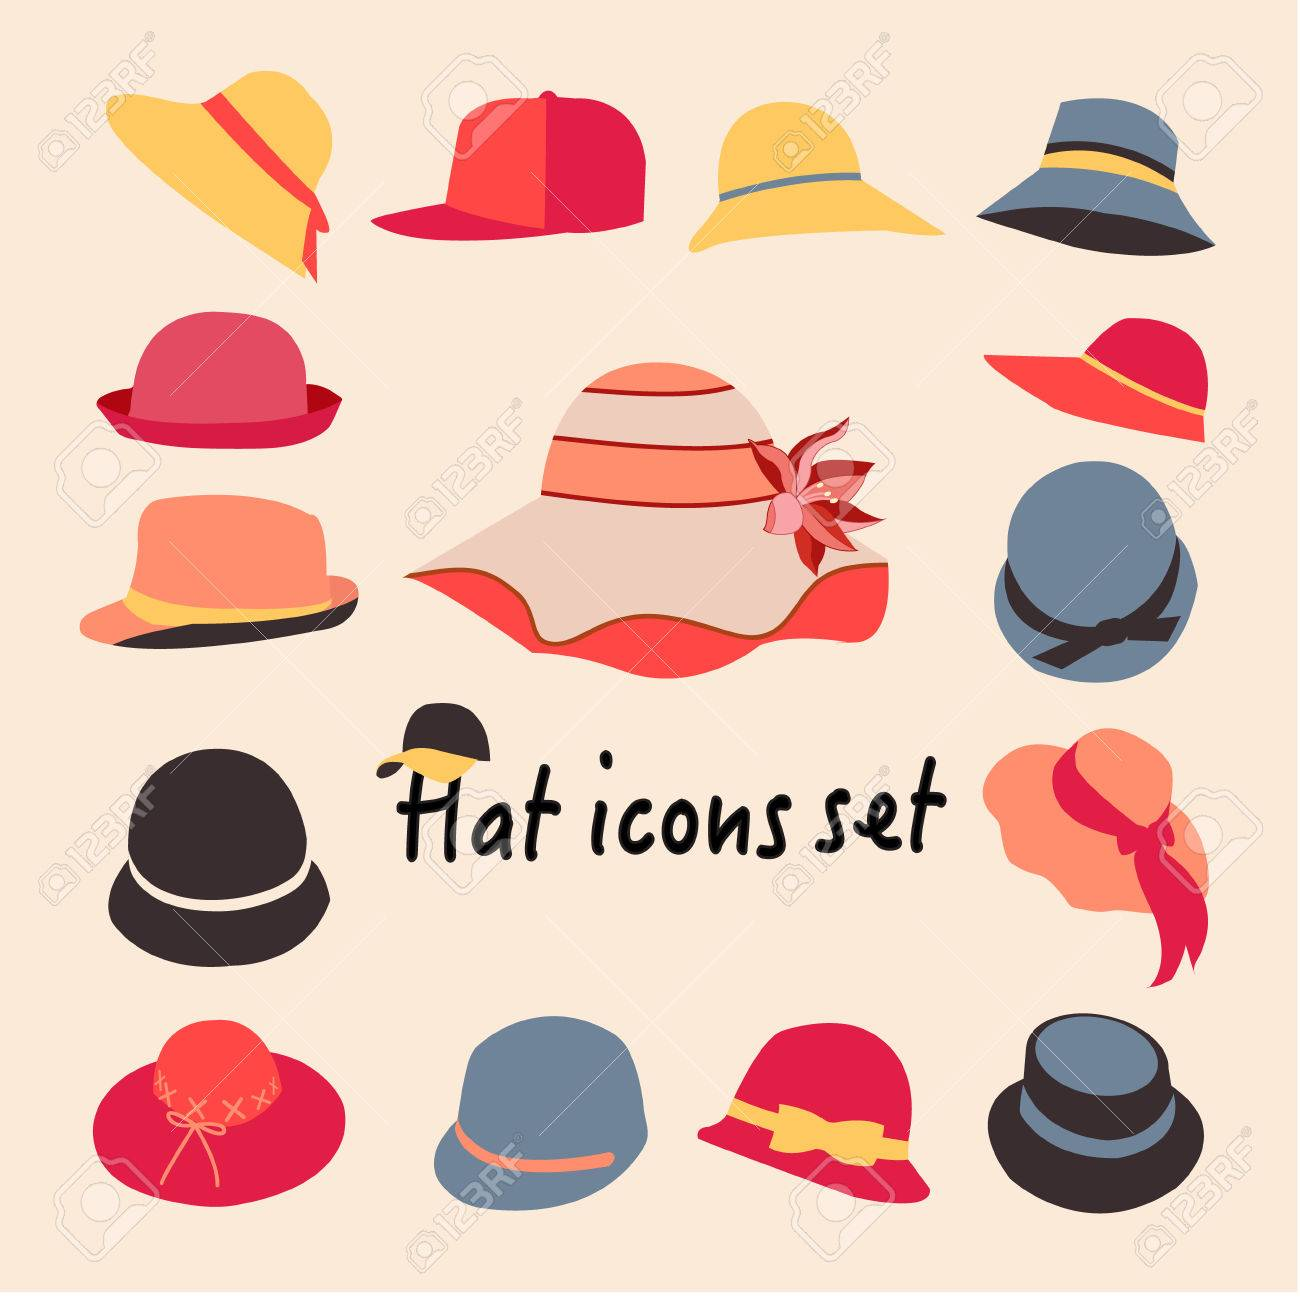 Vector Collection Of Hats For Men And Women Icons Set Different Royalty Free Cliparts Vectors And Stock Illustration Image 41789379